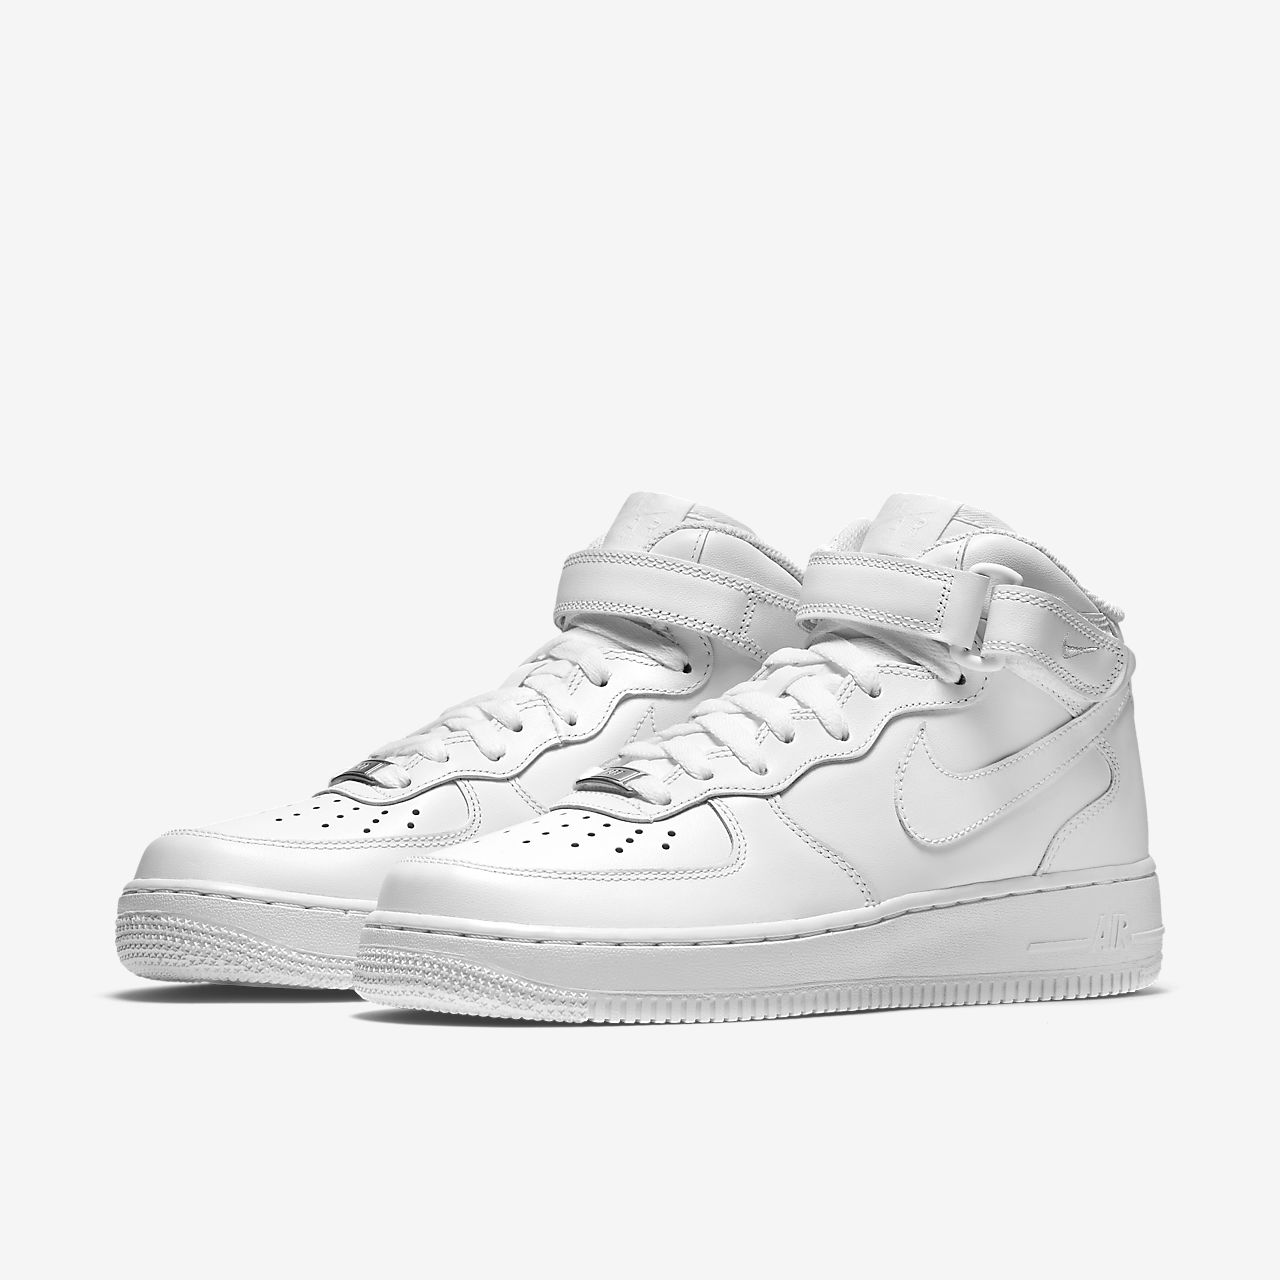 nike air force 1 mid 07 leather white